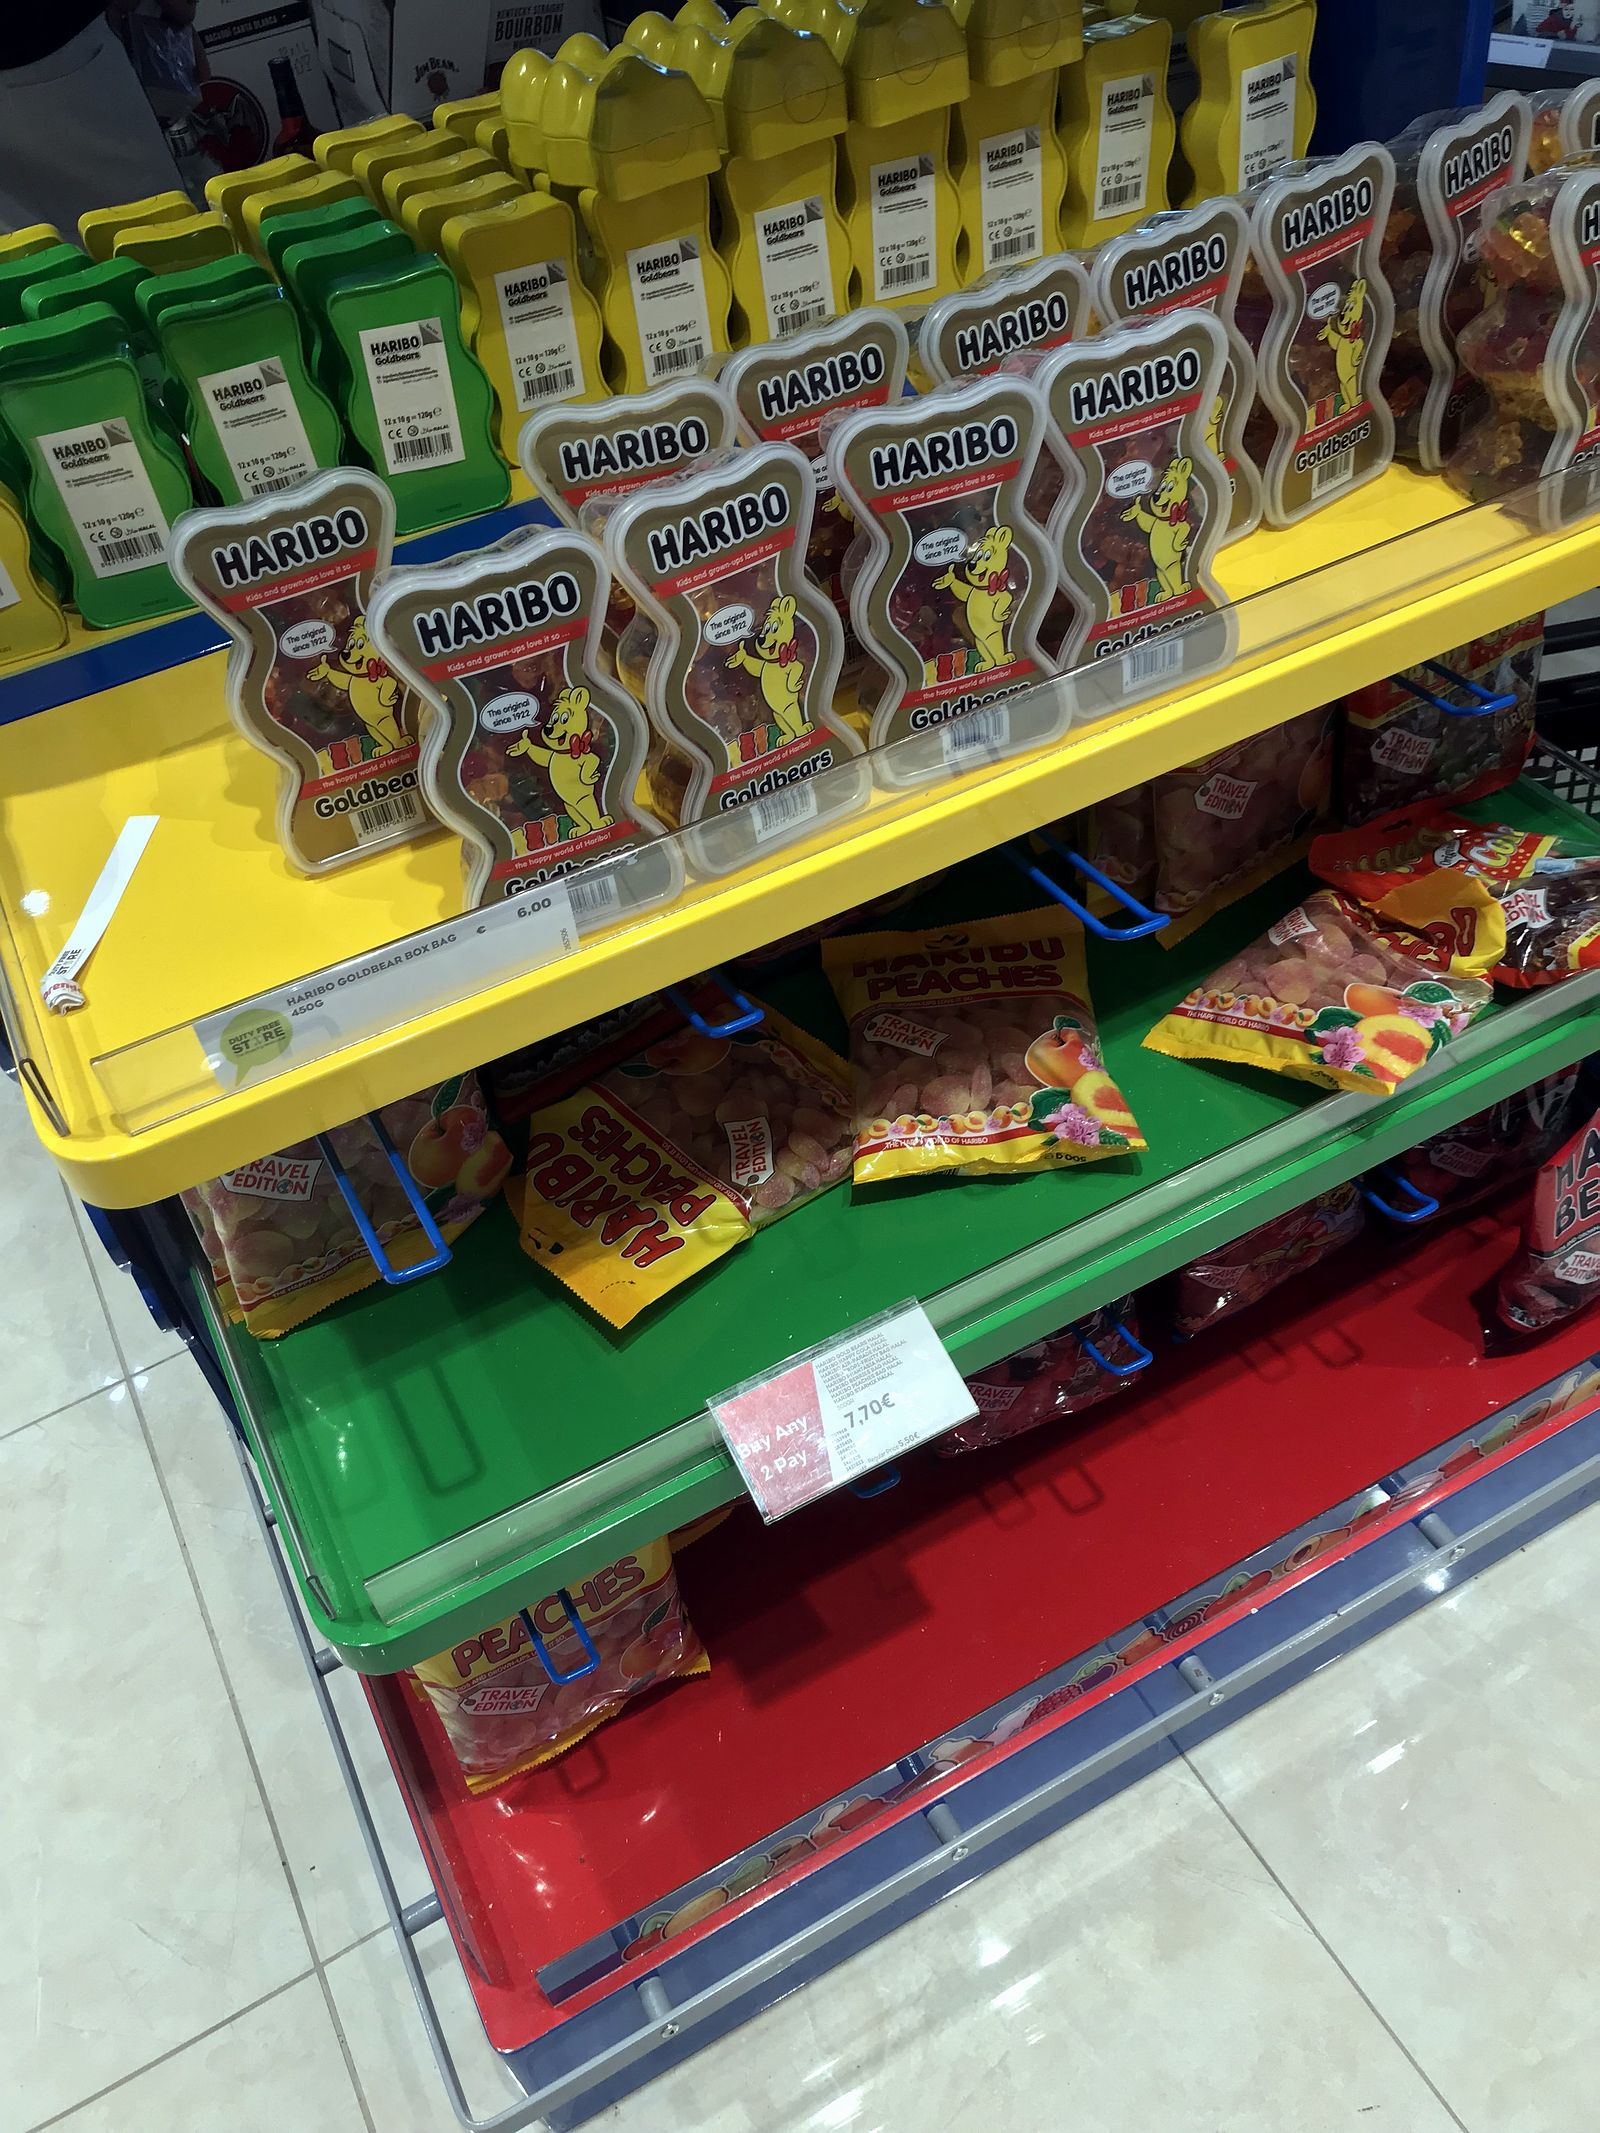 Duty free Antalya, august 2019, Haribo